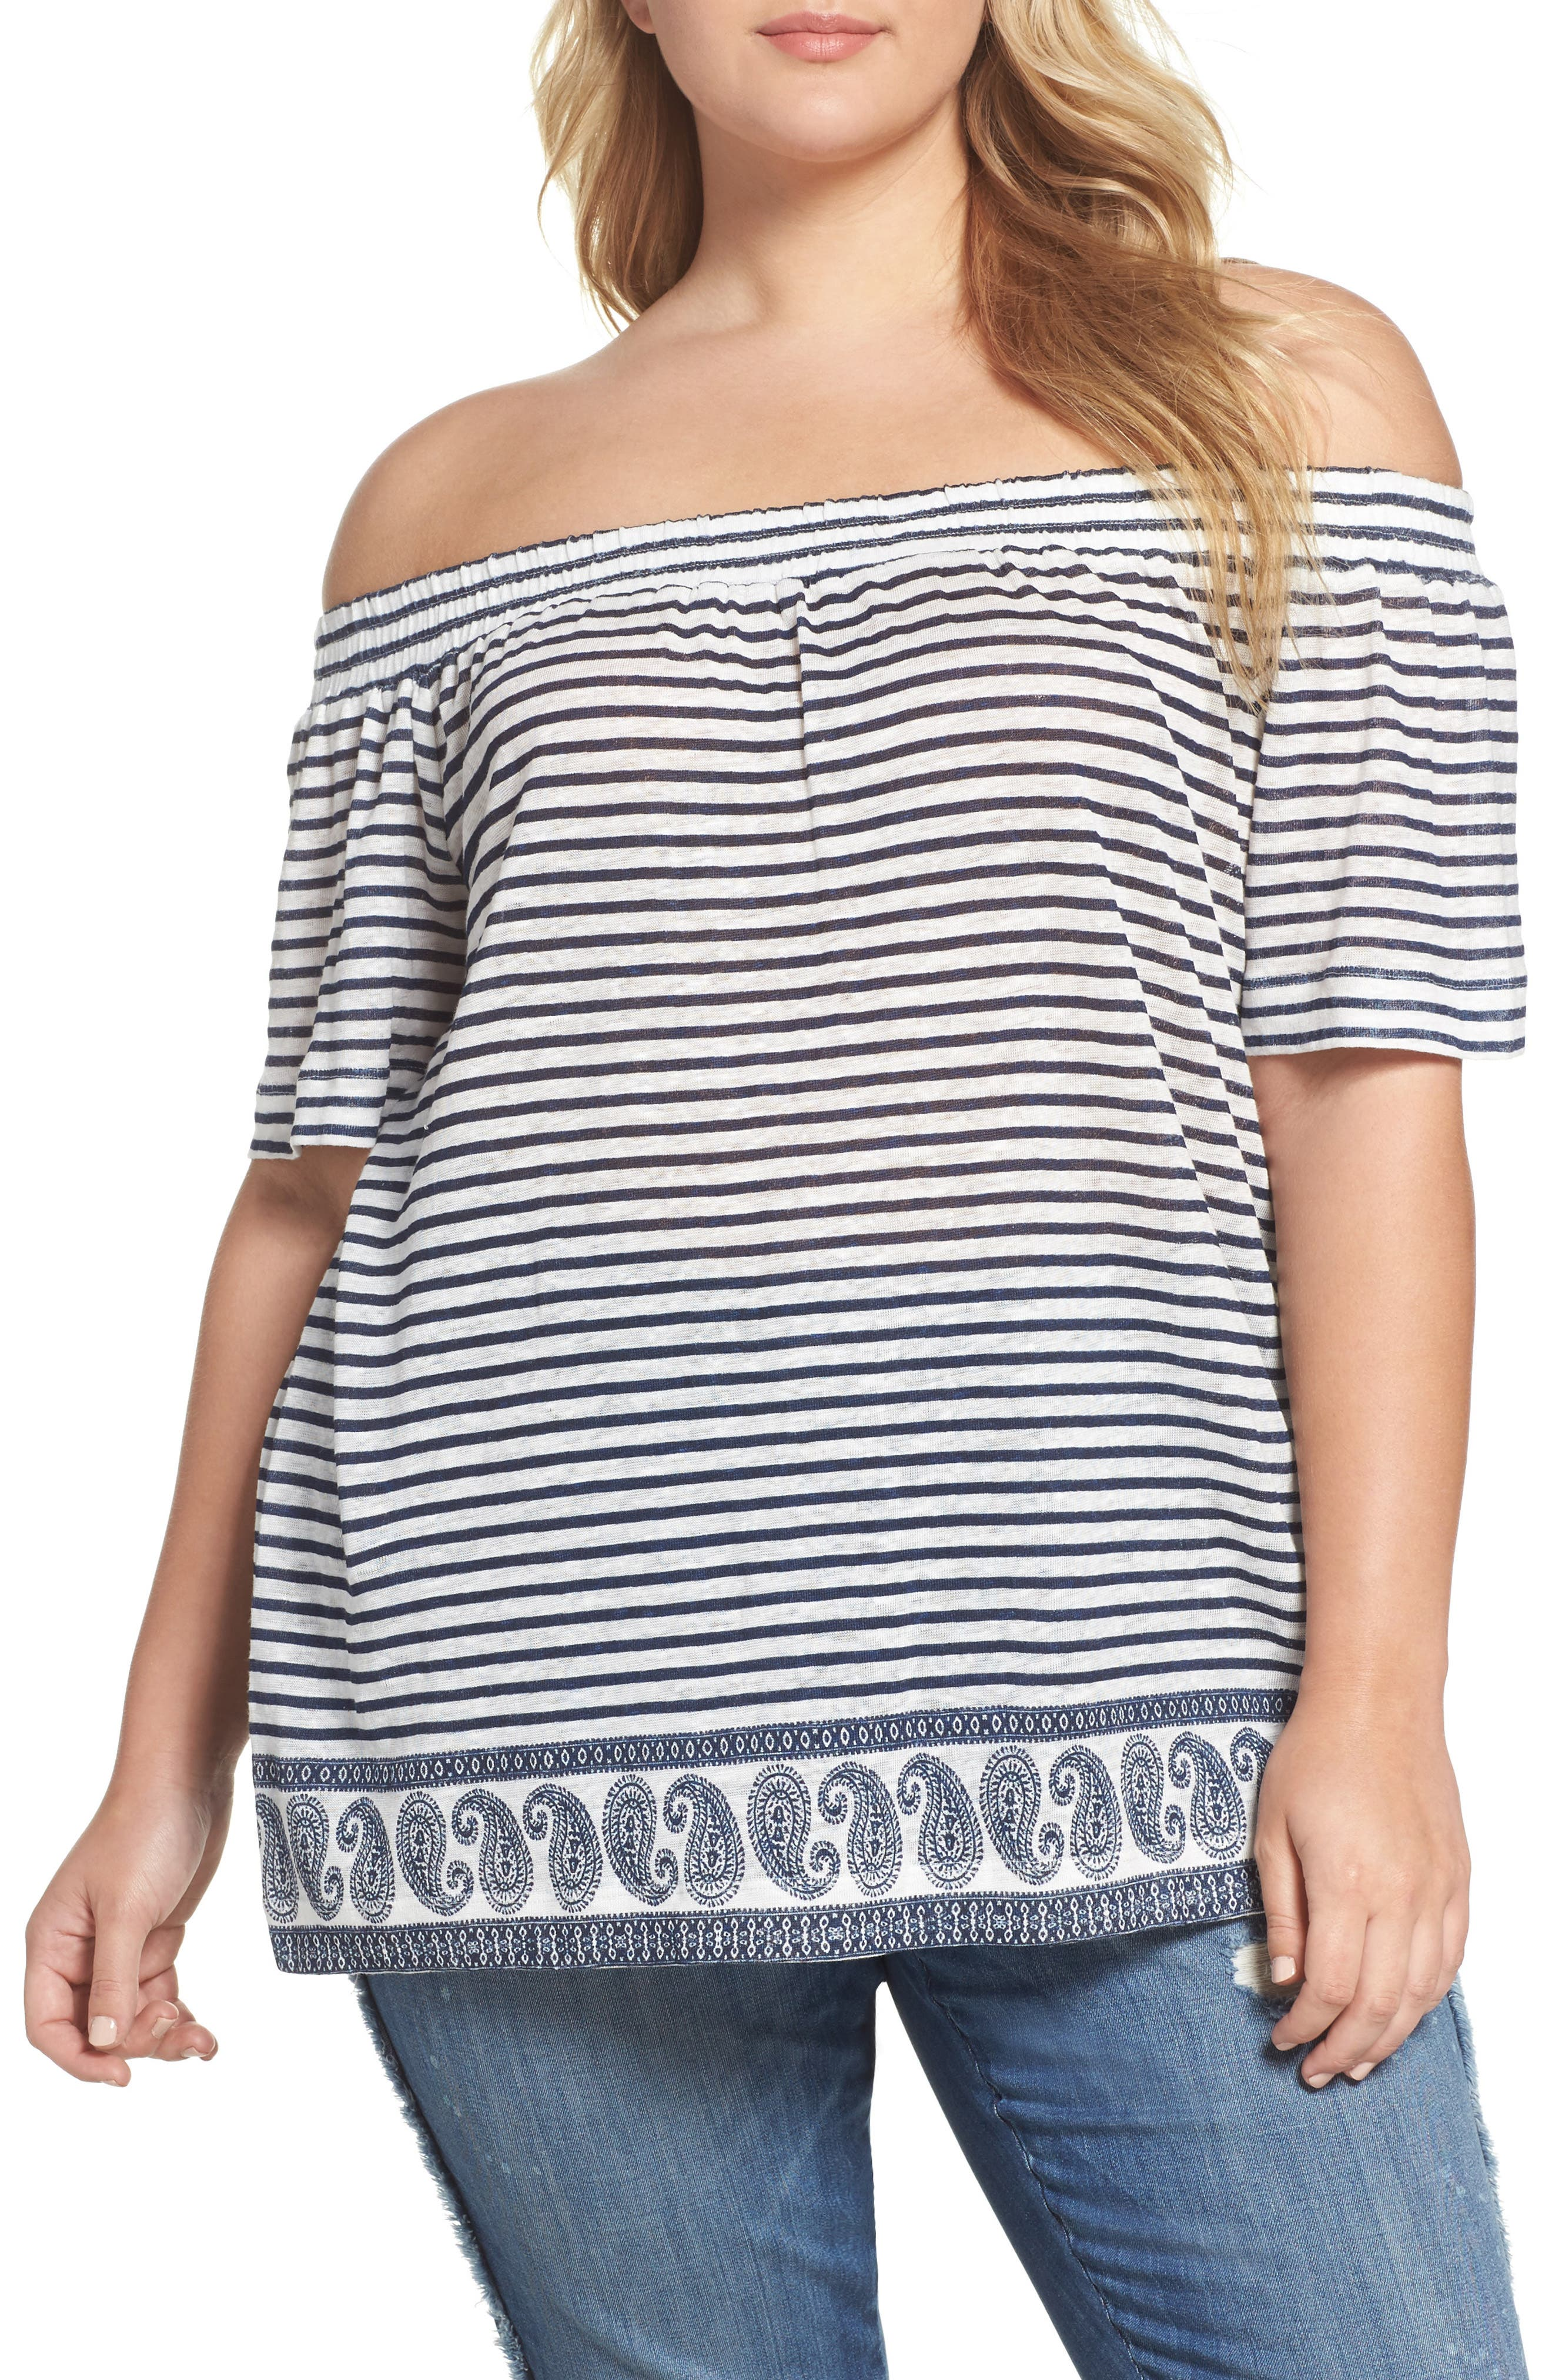 Main Image - Two by Vince Camuto Off the Shoulder Paisley Stripe Top (Plus Size)